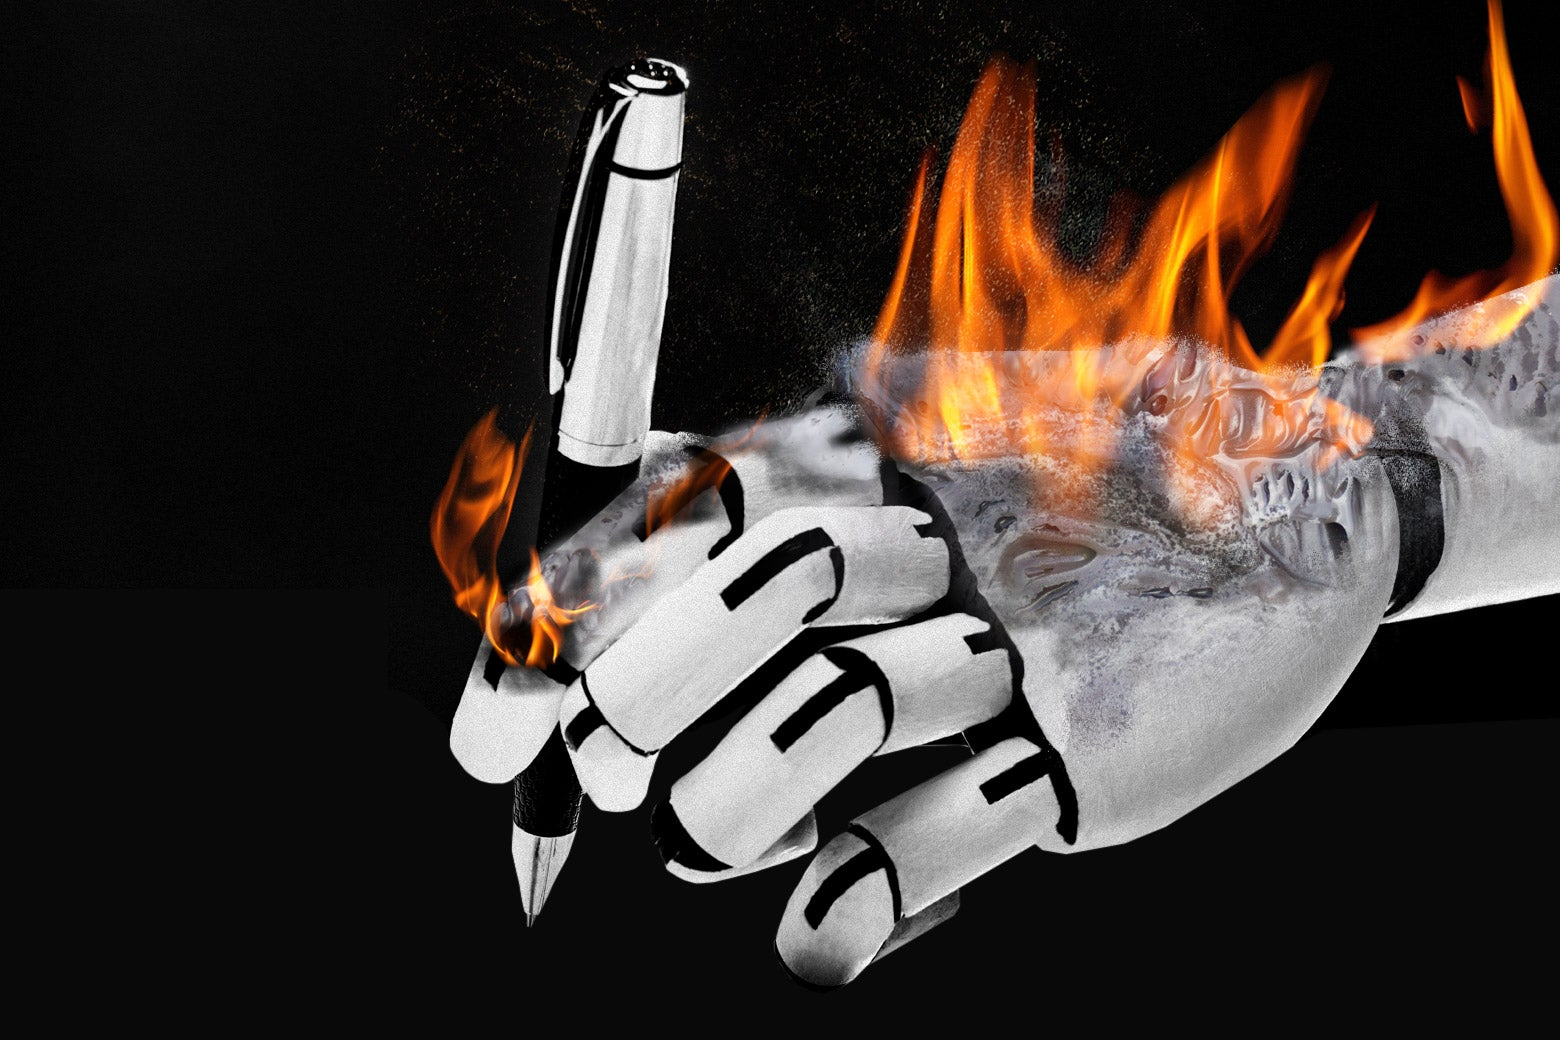 A robot hand holding a pen as it goes down in flames.